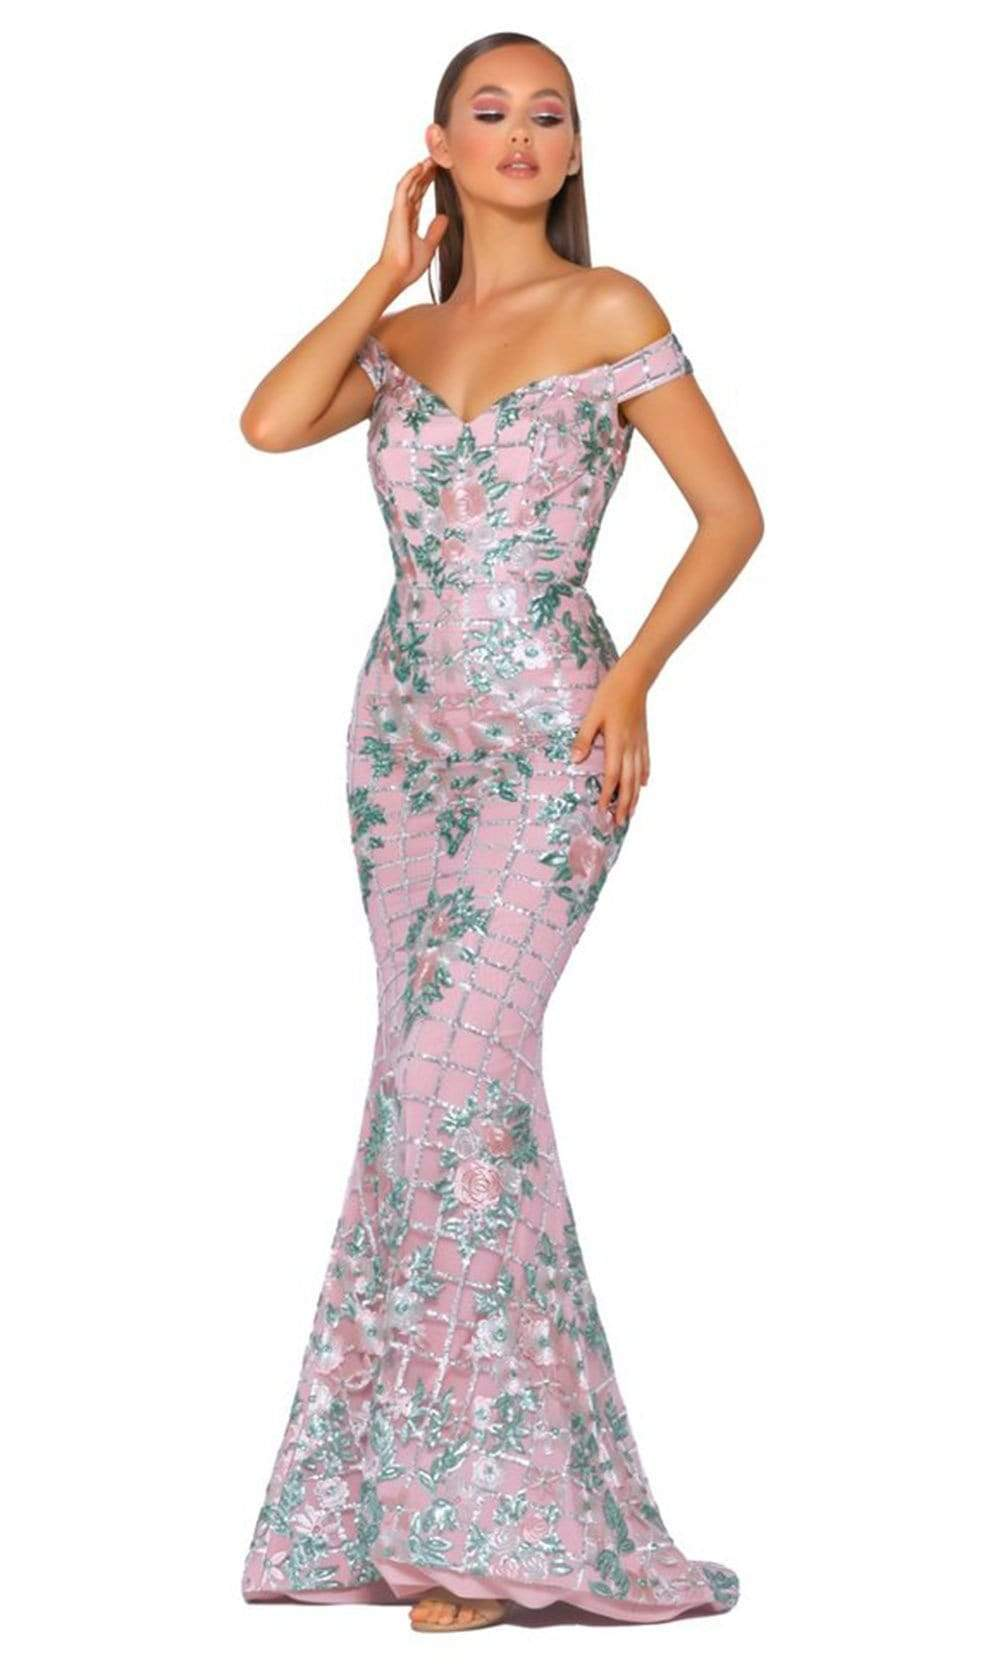 Portia and Scarlett - PS5054 Off Shoulder Floral Sequin Mermaid Gown from Portia and Scarlett